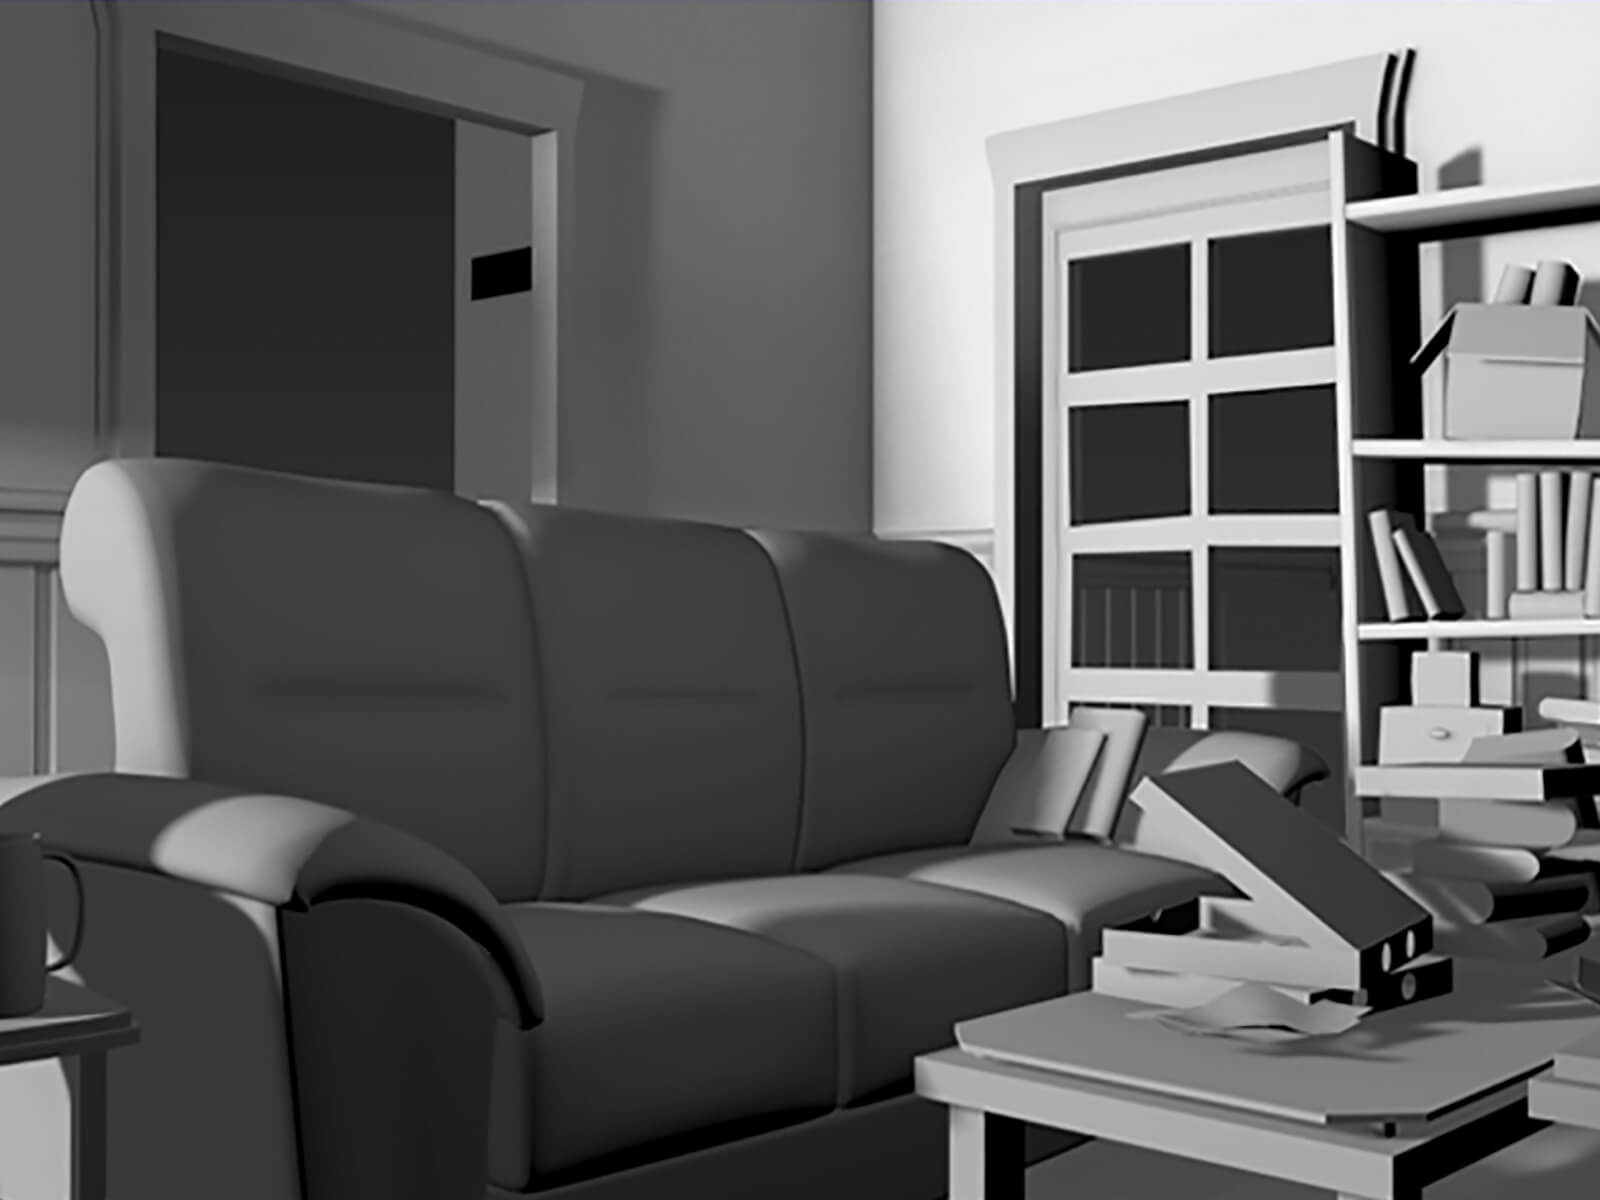 A colorless 3D-modeled living room with a couch in front of a small coffee table with a pizza box and books piled on top.